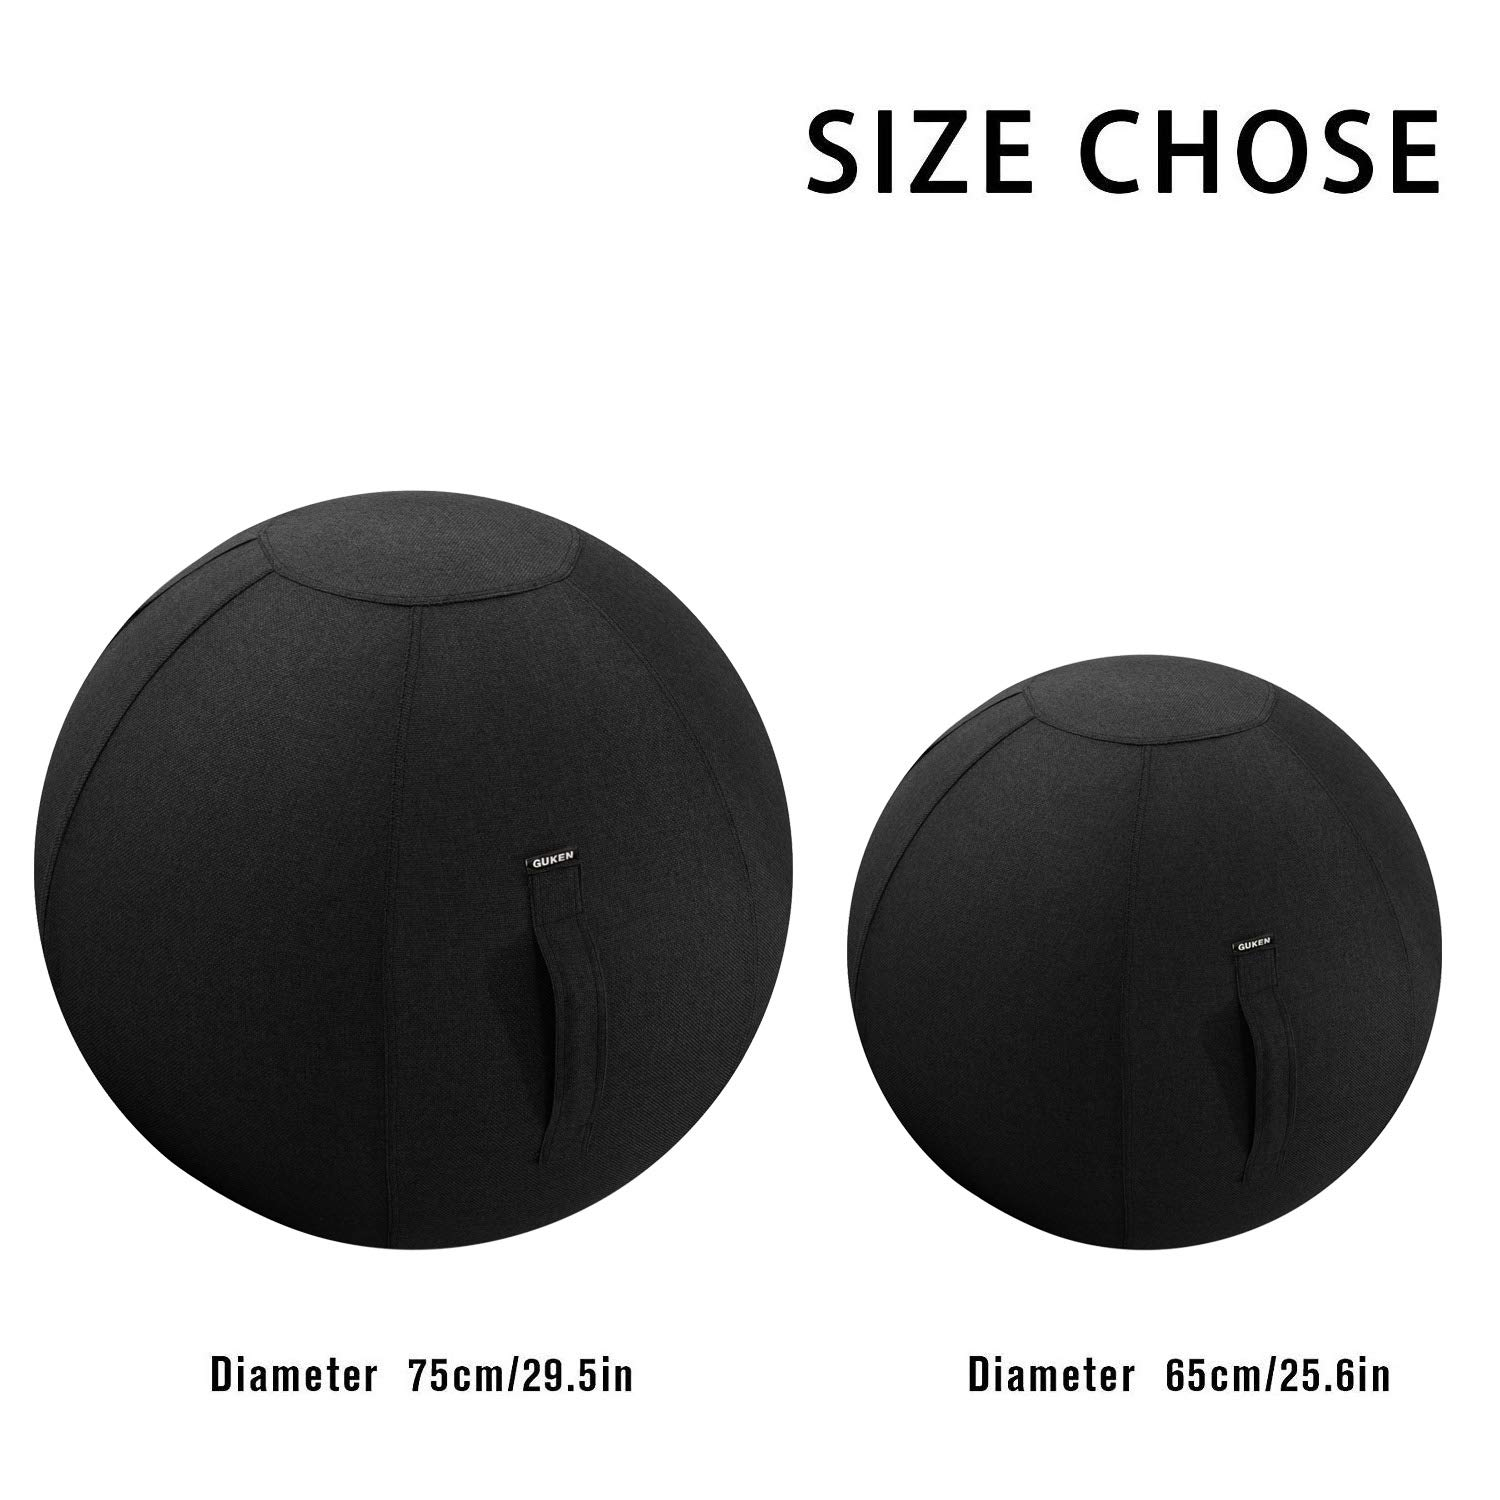 Guken Sitting Ball Chair with Cover, Exercise Yoga Ball for Office and Home Muscle Training Fitness, Stability Ball with Pump and Handle (Black, 65cm) by Guken